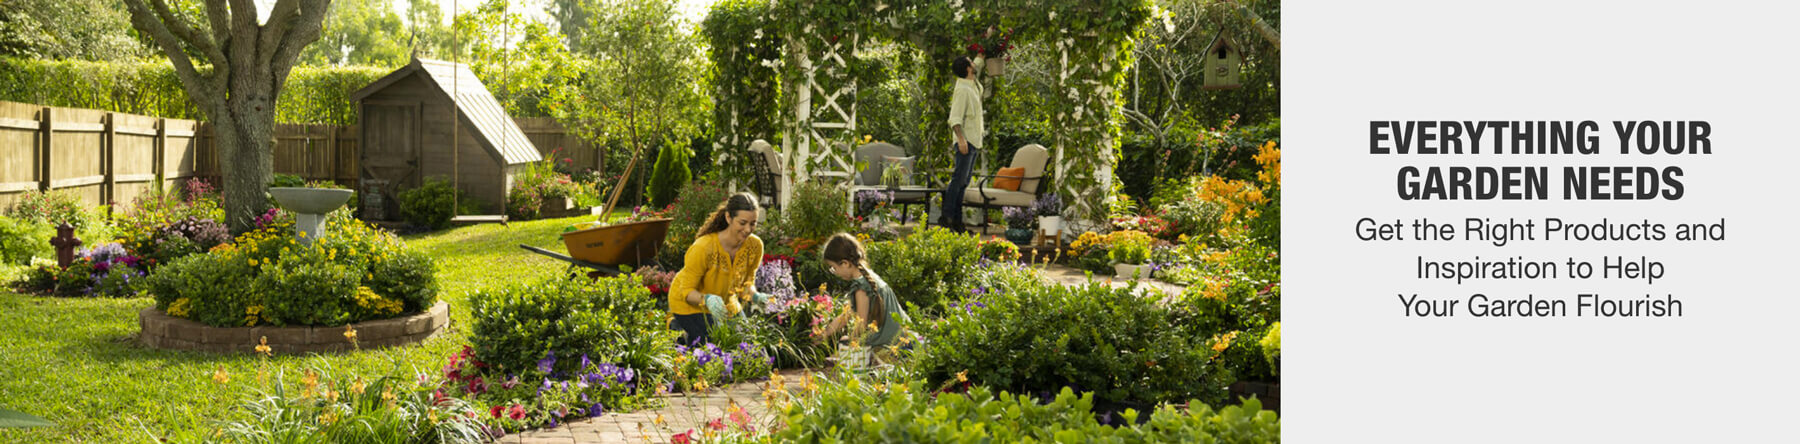 EVERYTHING YOUR GARDEN NEEDS IS HERE Get the best products and inspiration to help your garden flourish Shop Now